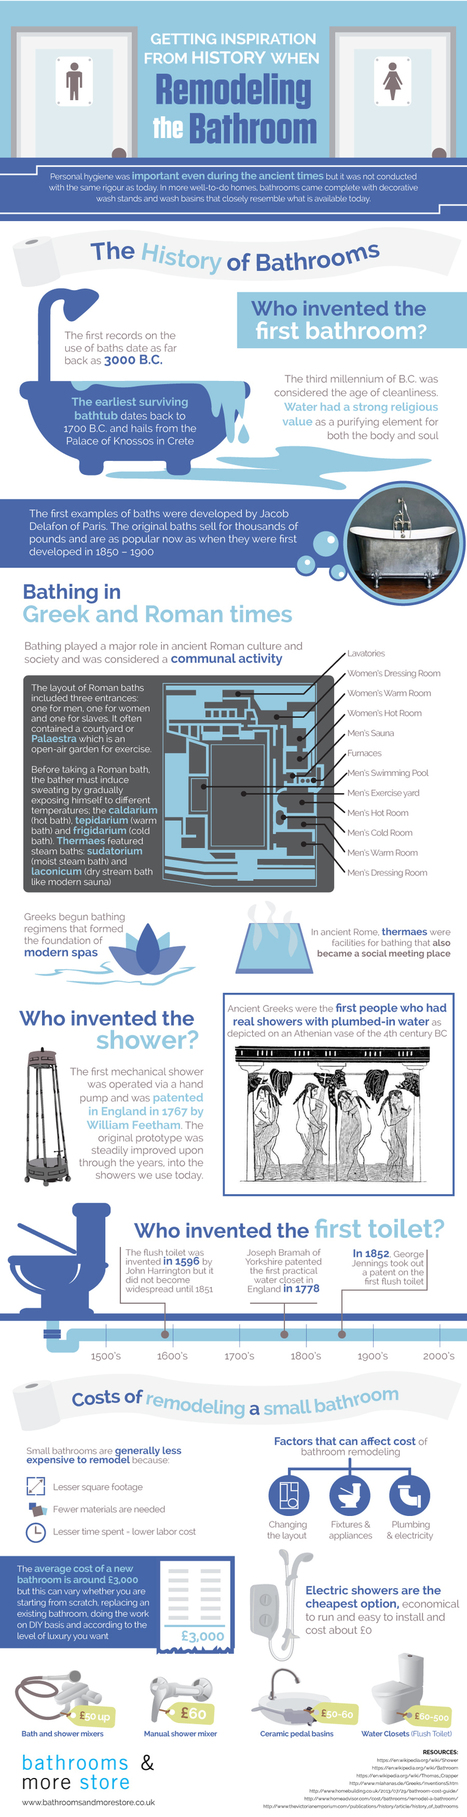 Getting Inspiration from History when Remodeling the Bathroom | Infographics | Scoop.it